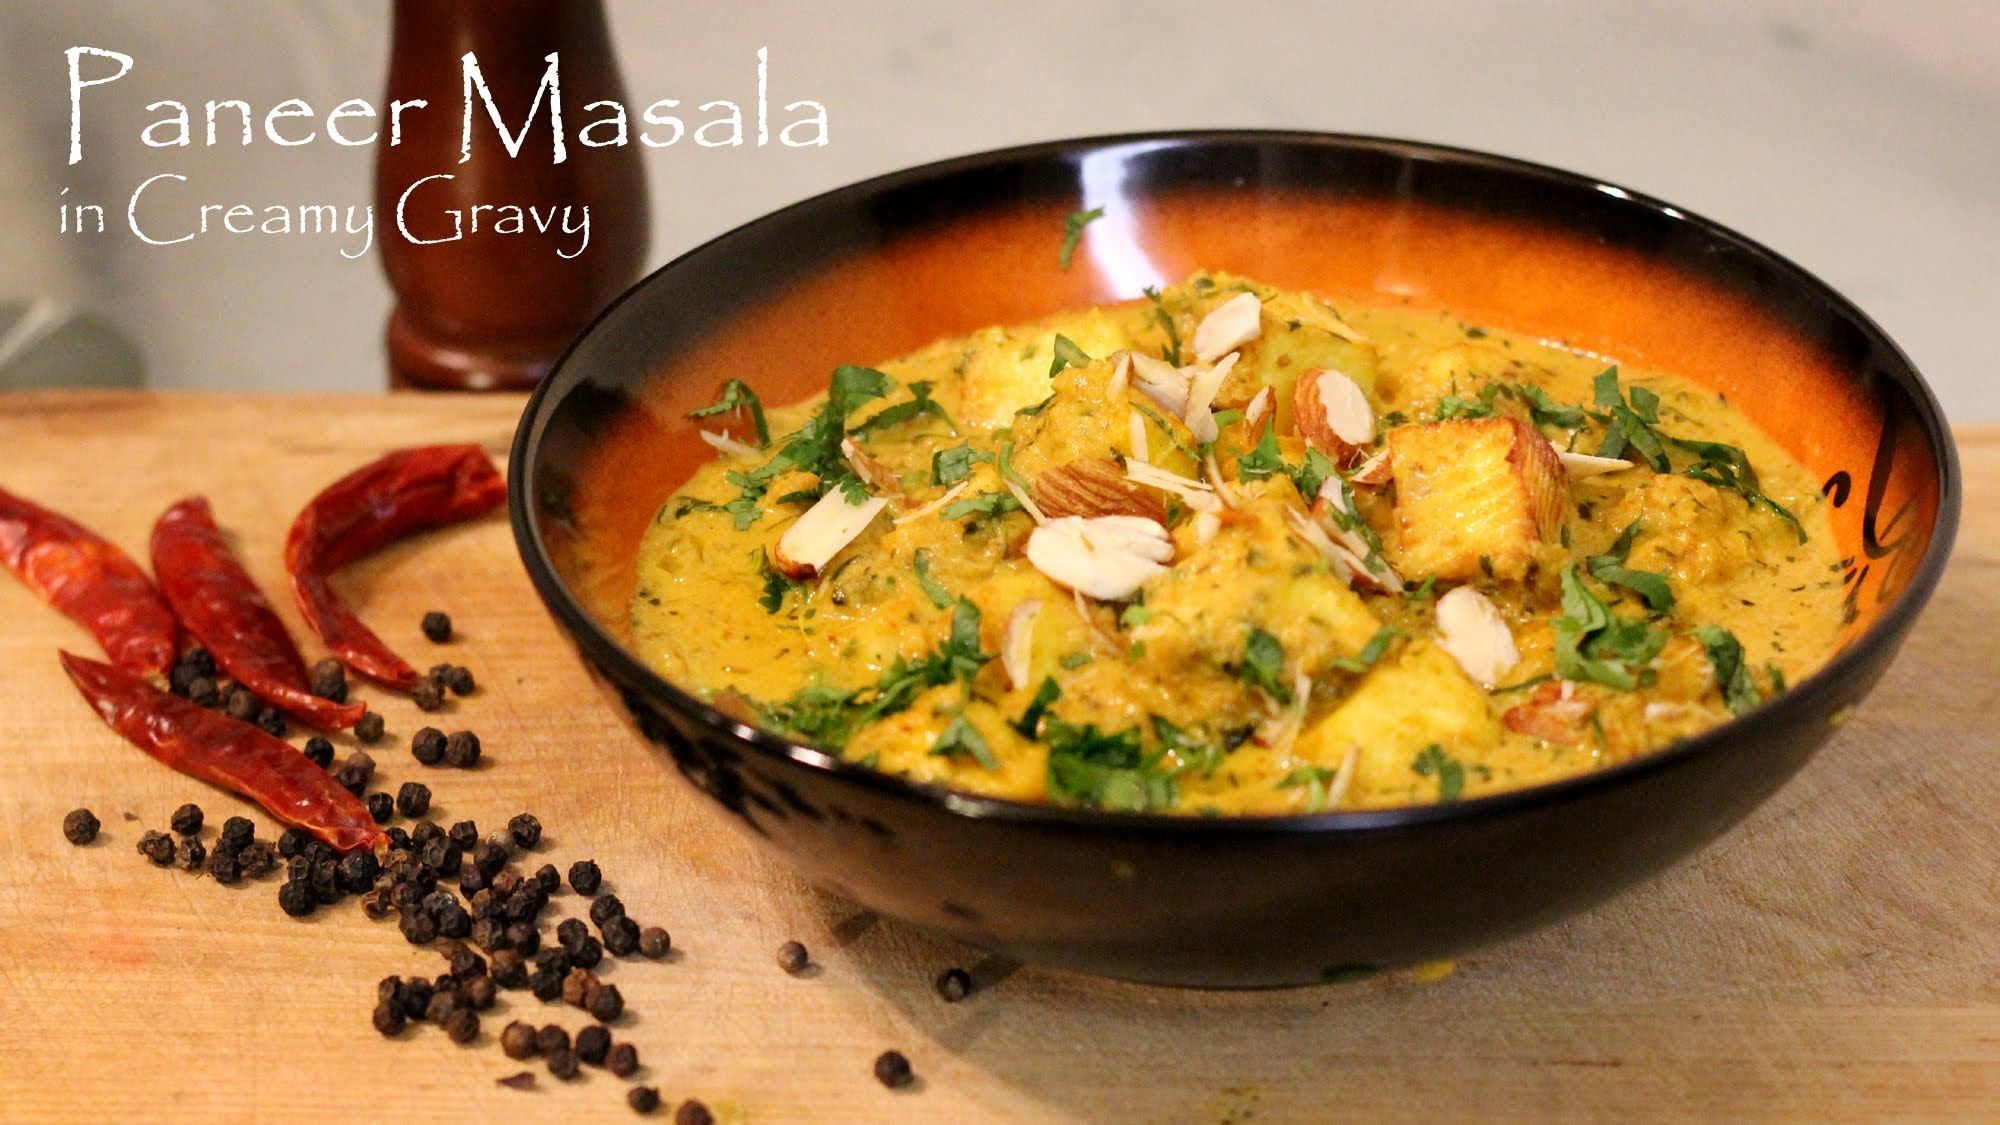 Paneer masala recipe resturant style indian recipe video indian paneer masala recipe resturant style indian recipe video indian vegetarian recipes click here forumfinder Image collections